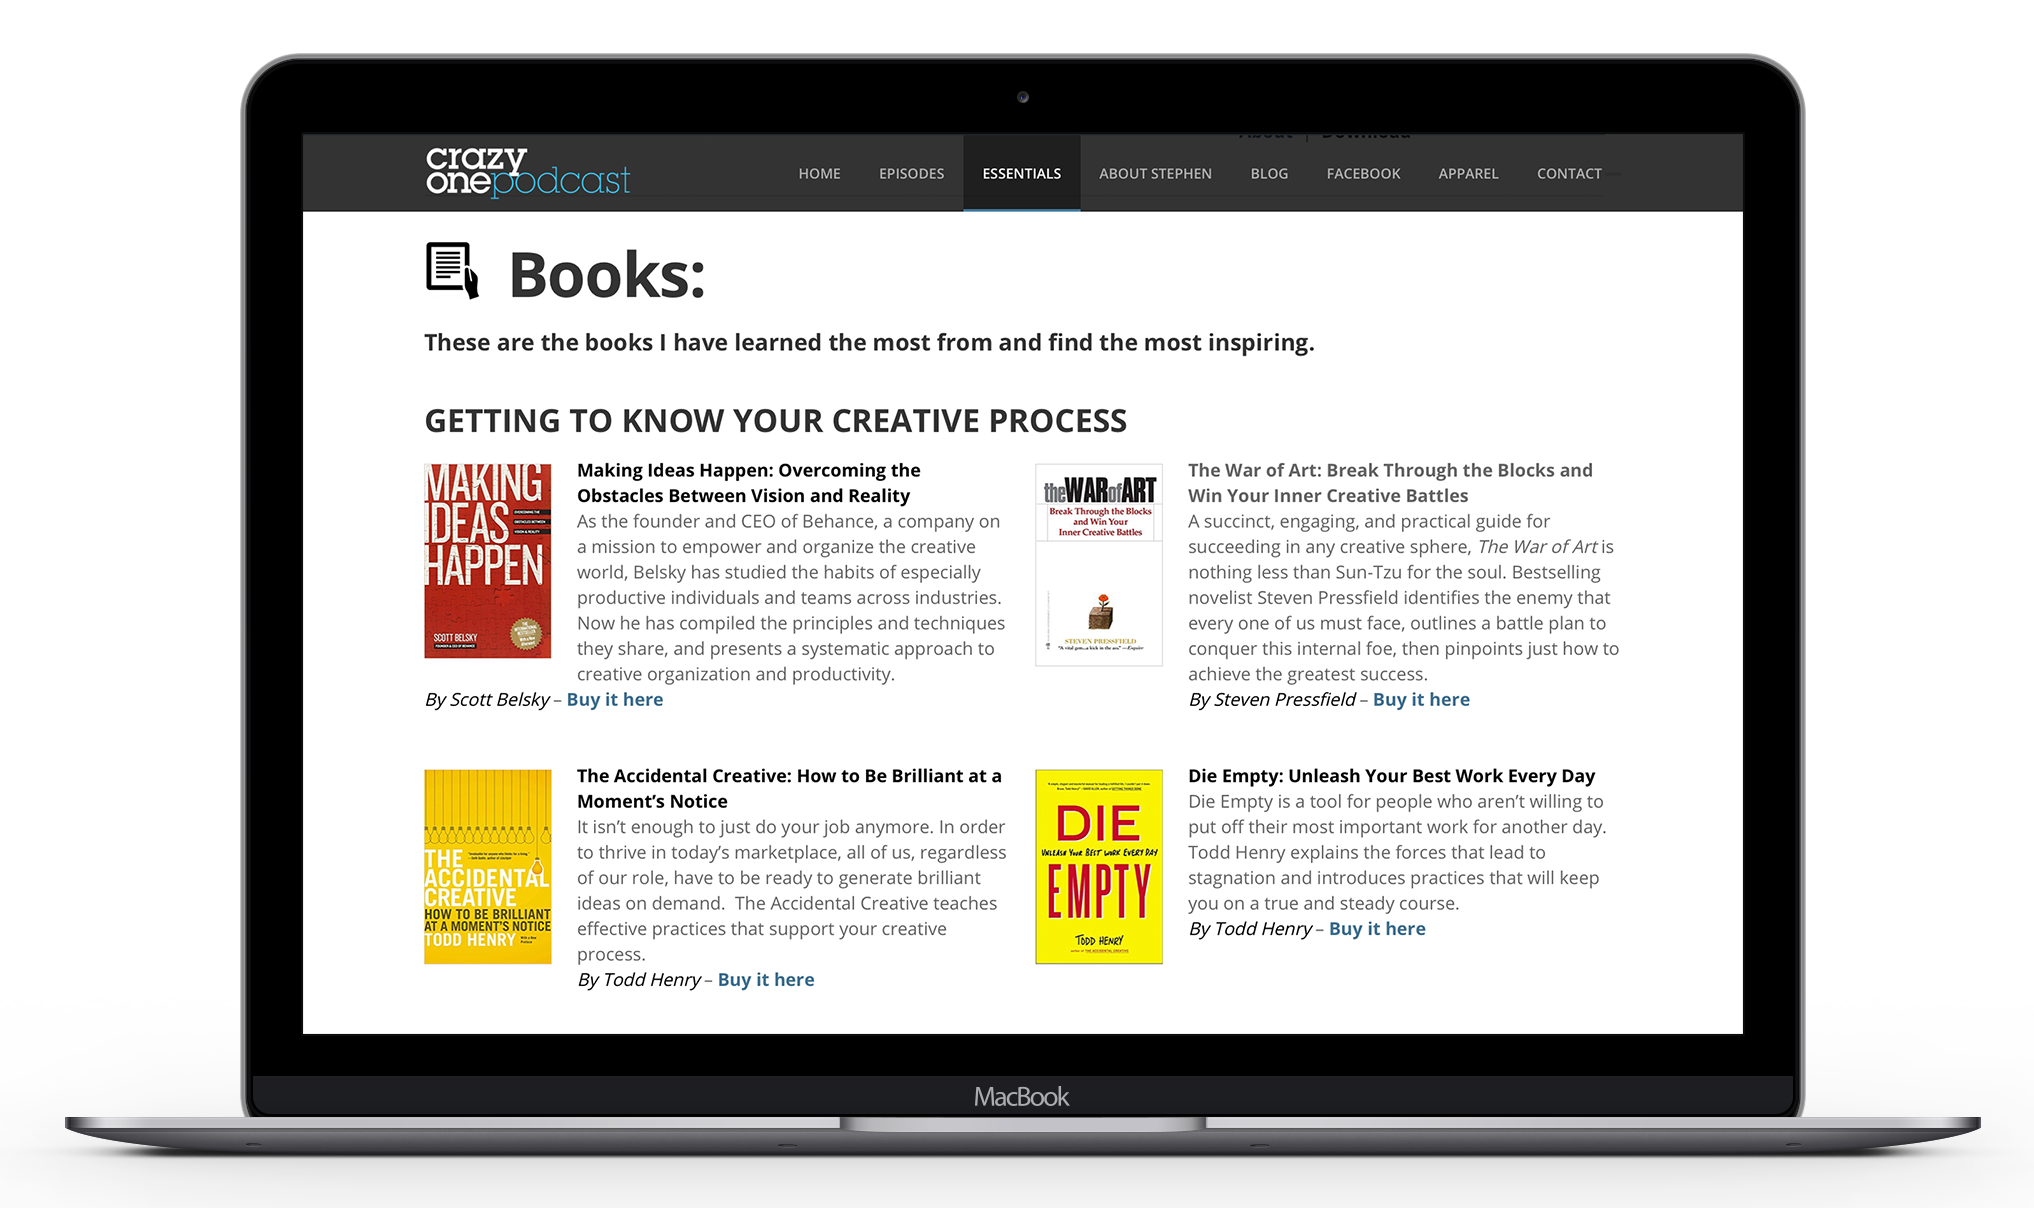 Essential apps, books, videos and more for all creatives